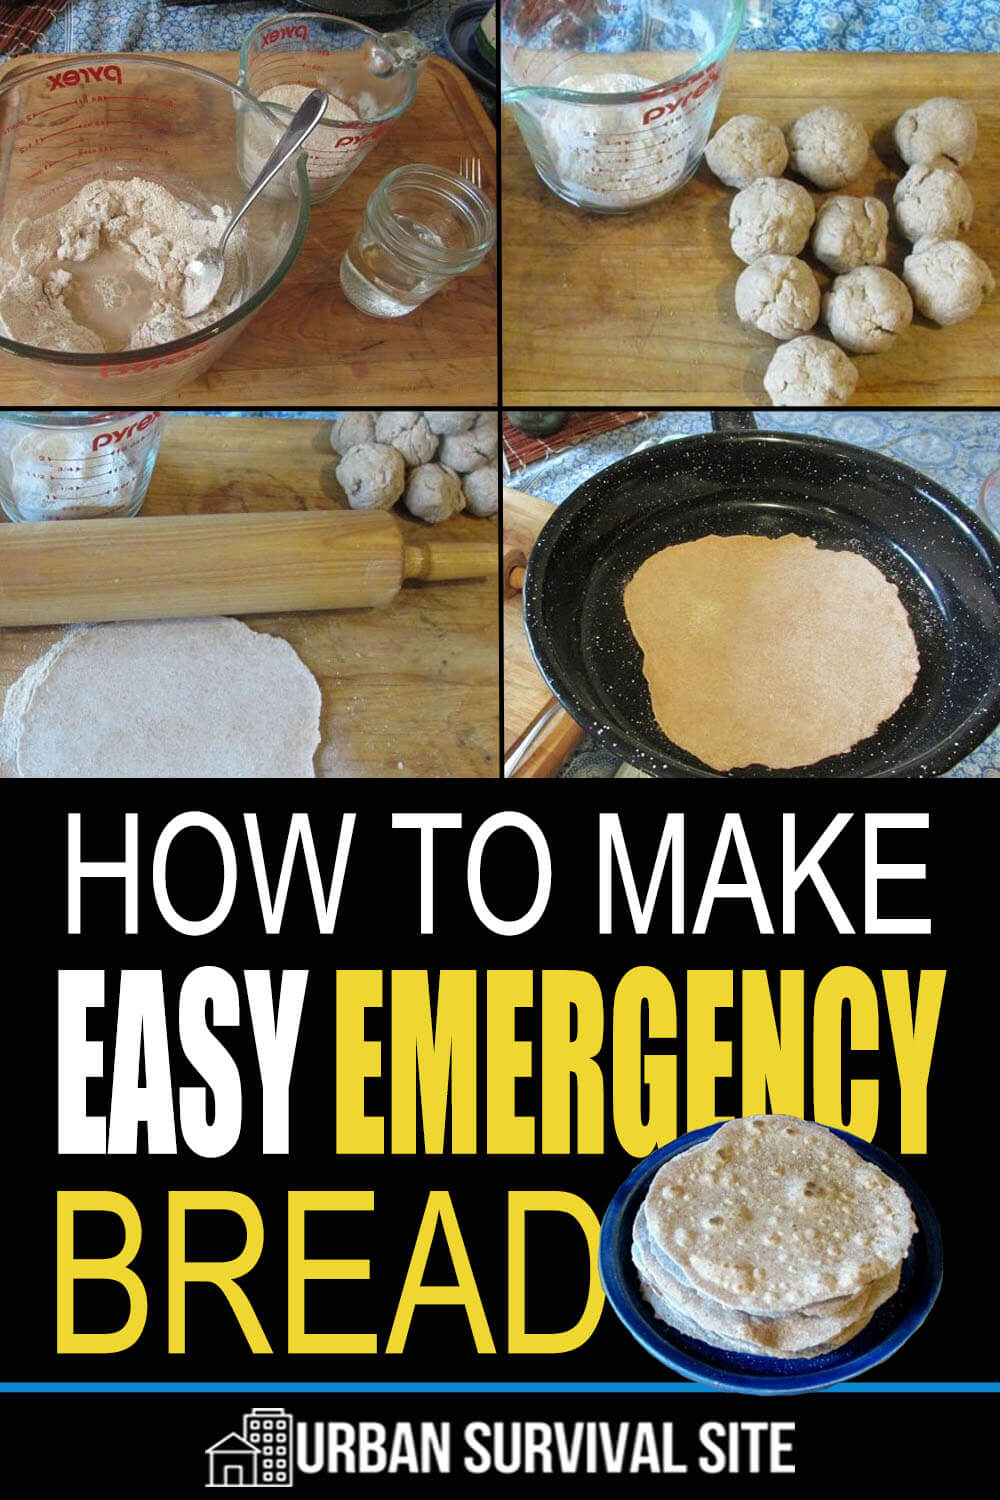 How to Make Easy Emergency Bread